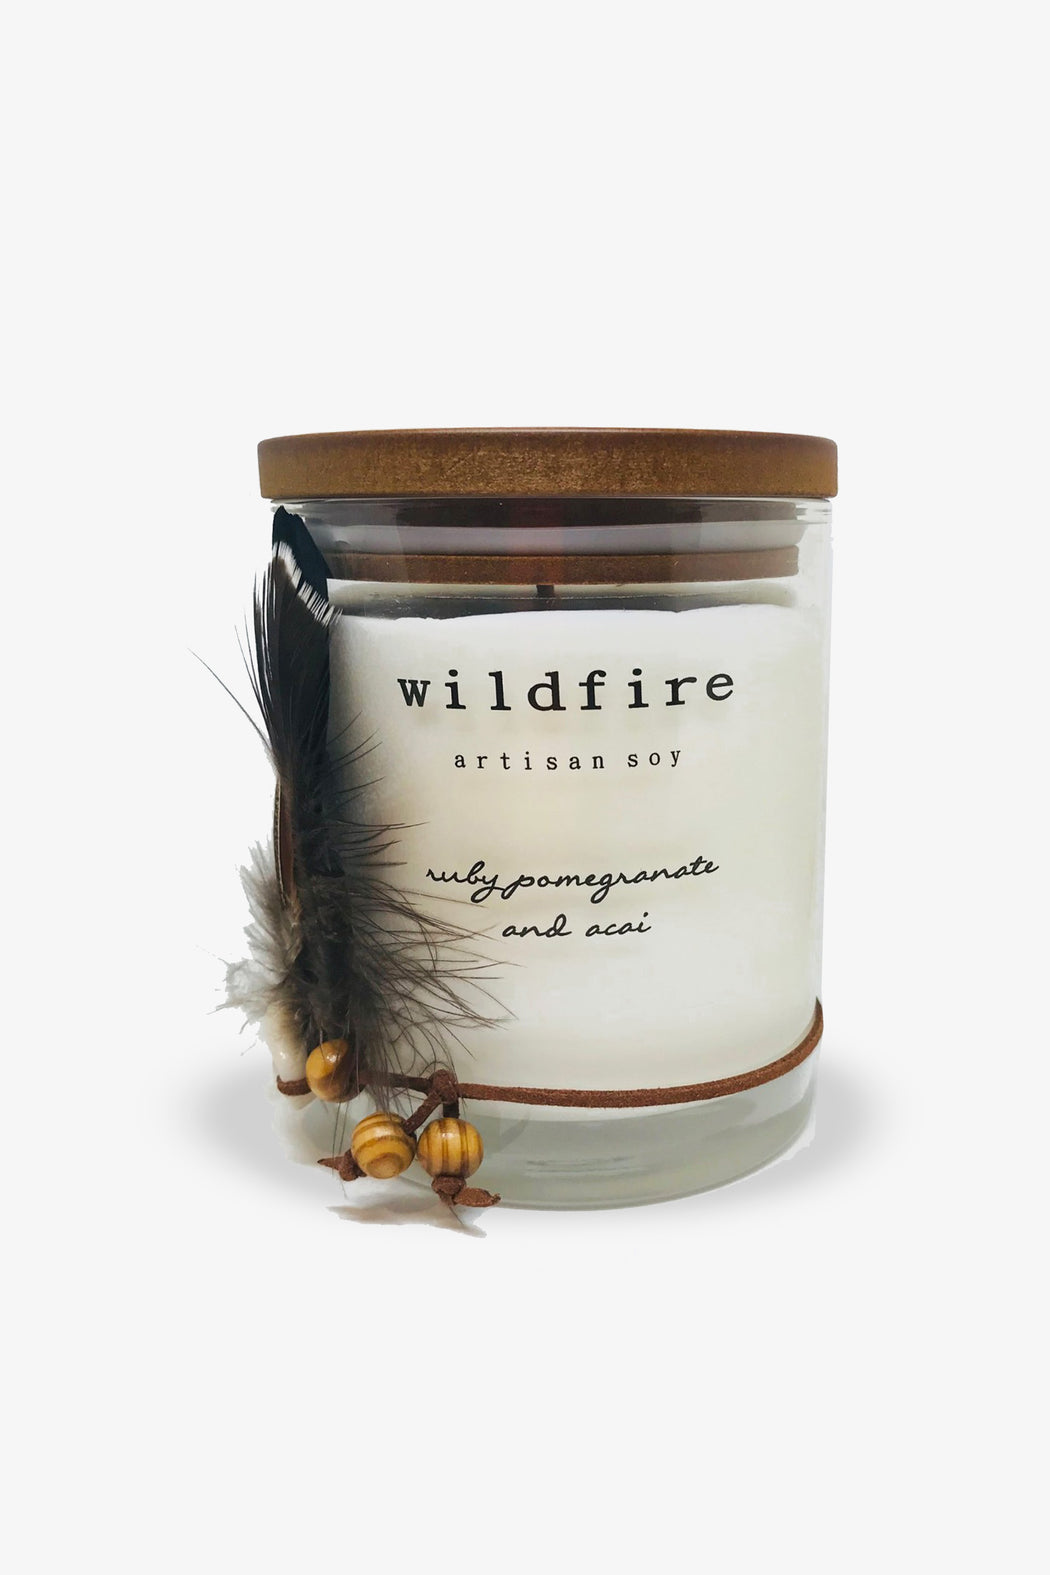 Wildfire-Ruby Pomegranate and Acai Candle-Mott and Mulberry